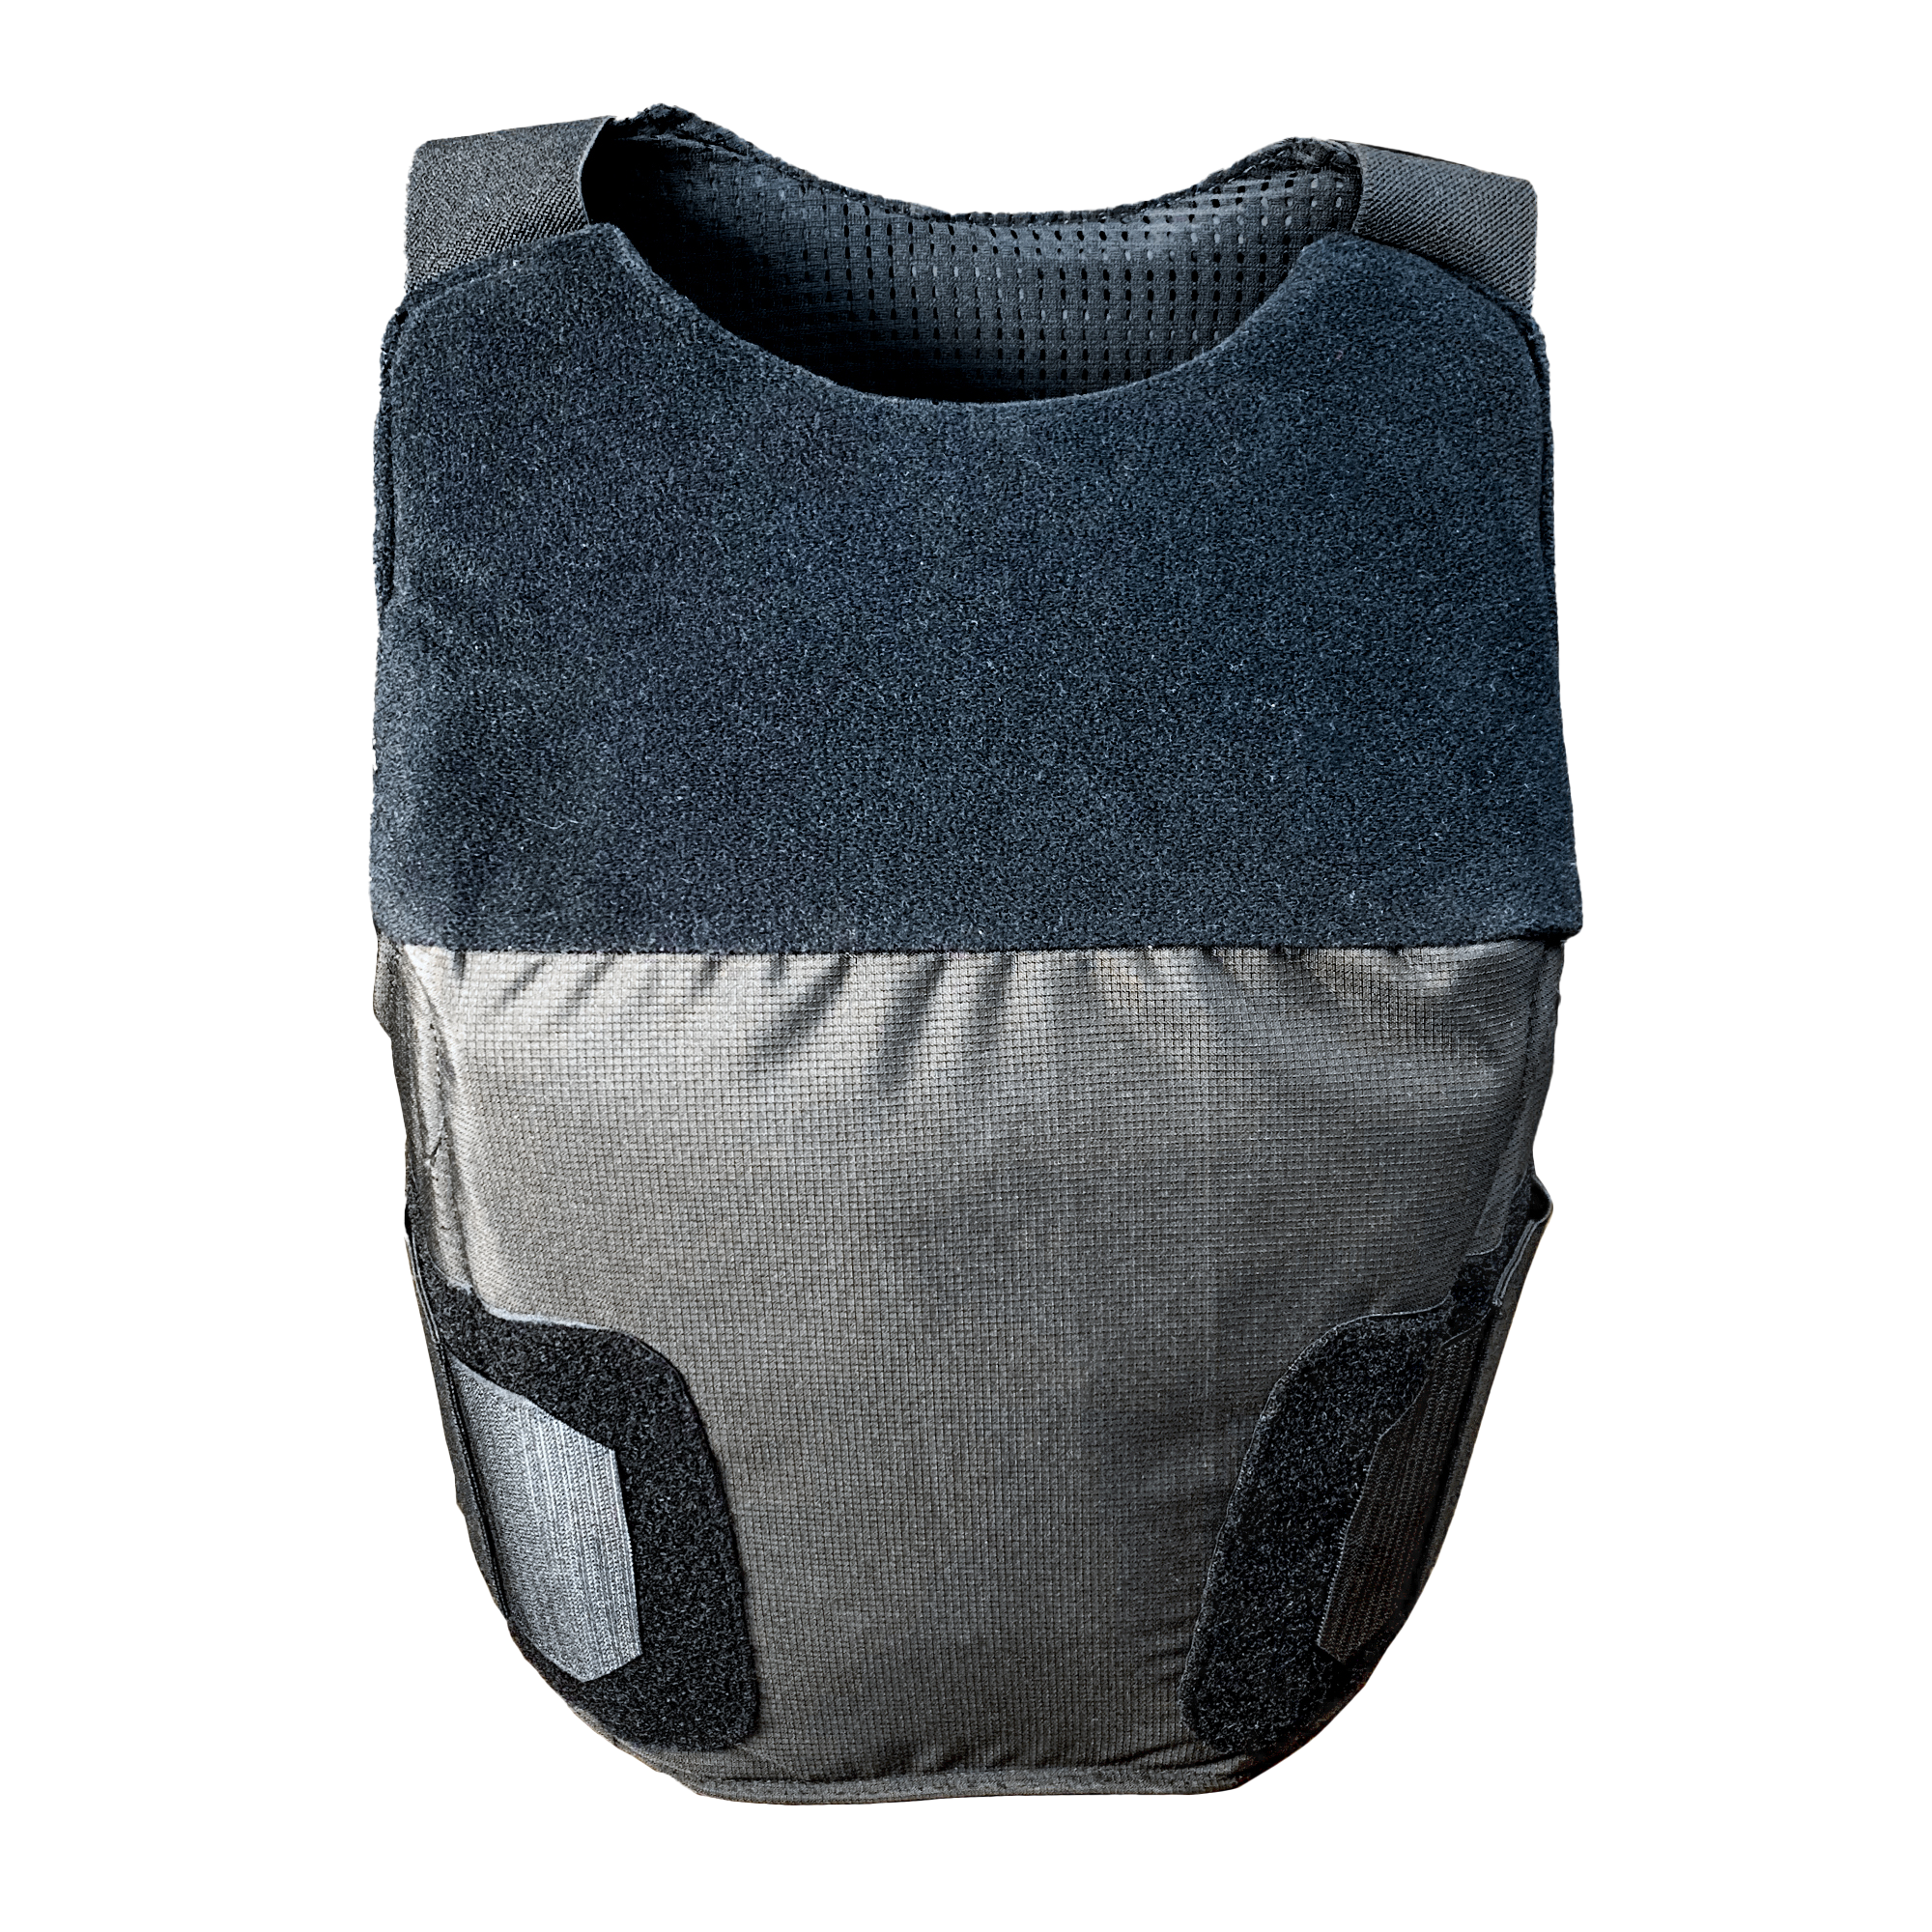 Citizen Armor Civvy Covert Female Vest